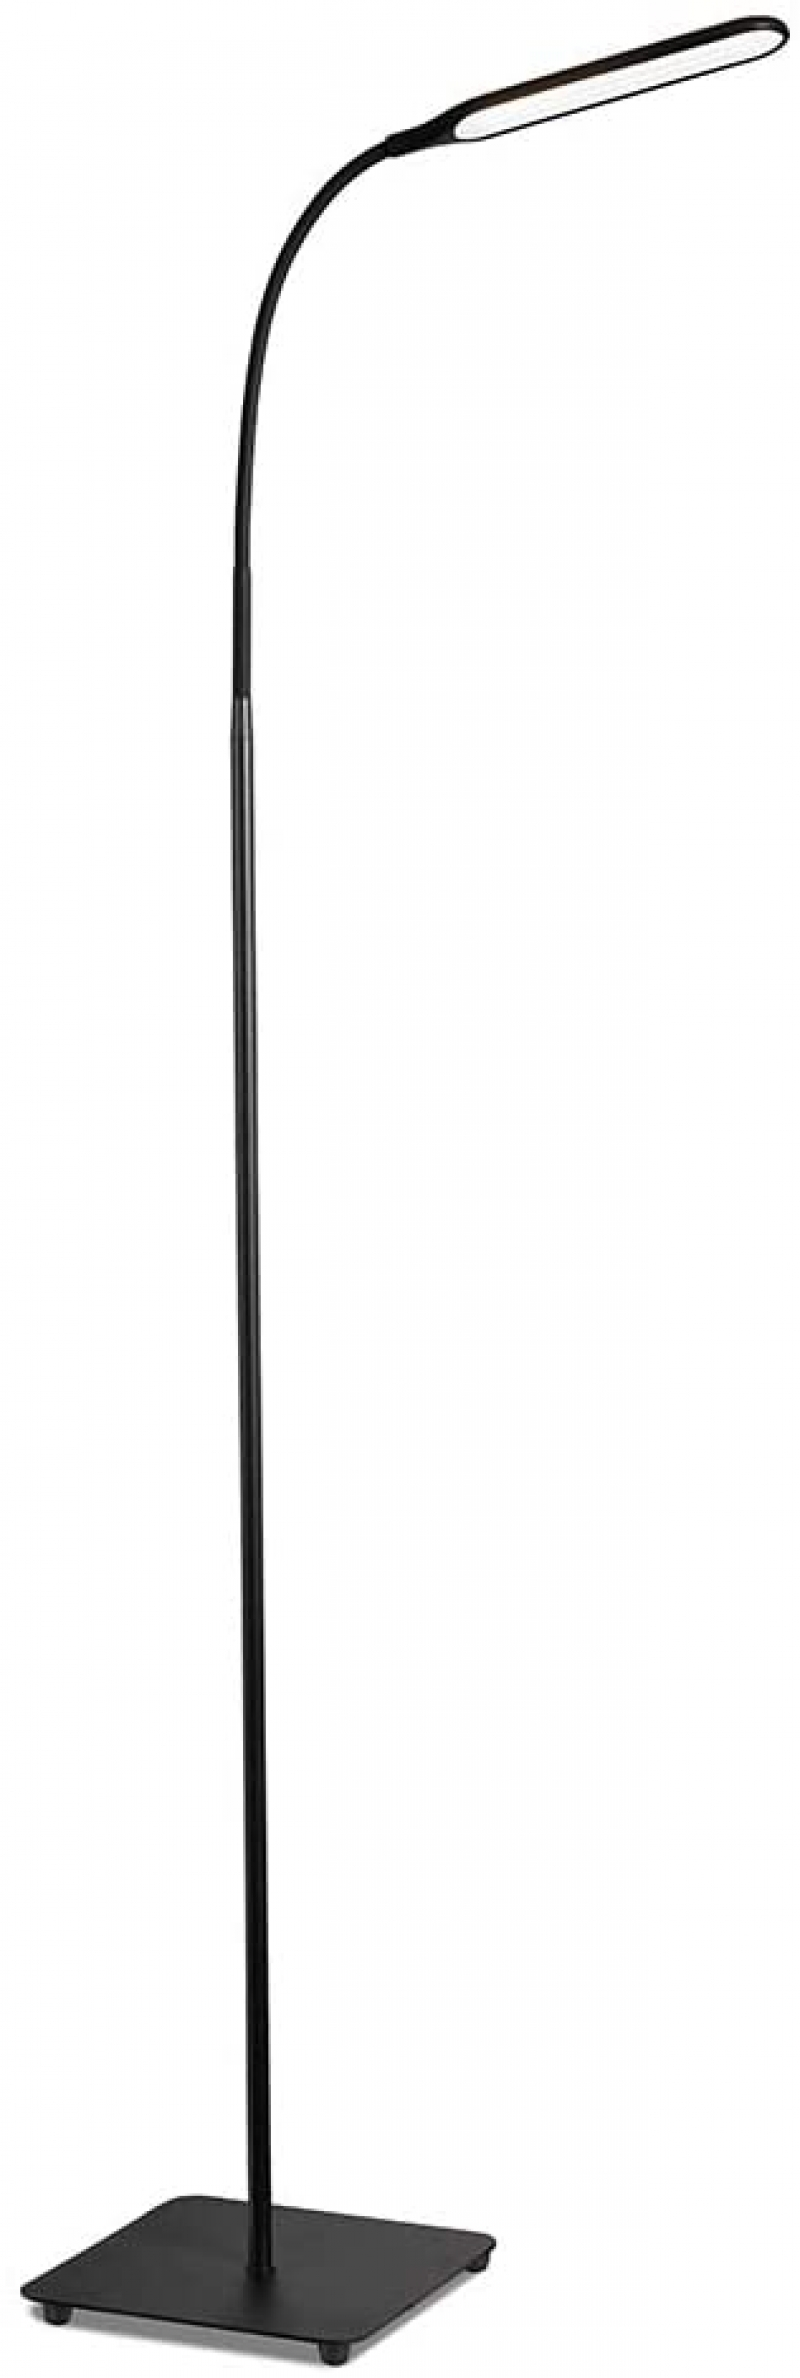 ihocon: TaoTronics TT-DL072 LED Dimmable Floor Lamp 落地燈/立燈